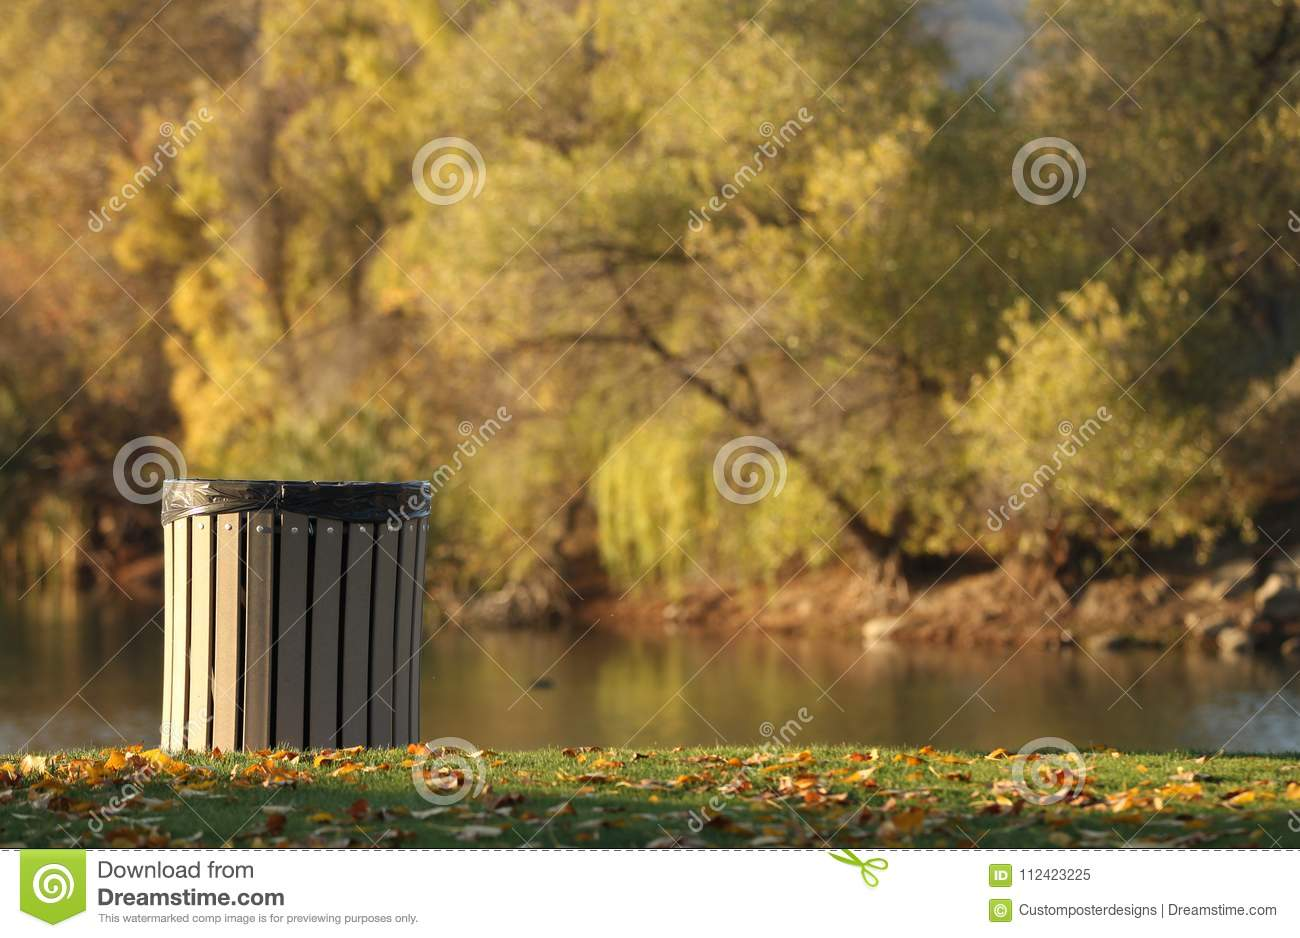 Download An Environmentally Friendly Trash Can At The Park. Stock Image - Image of outdoor, environment: 112423225